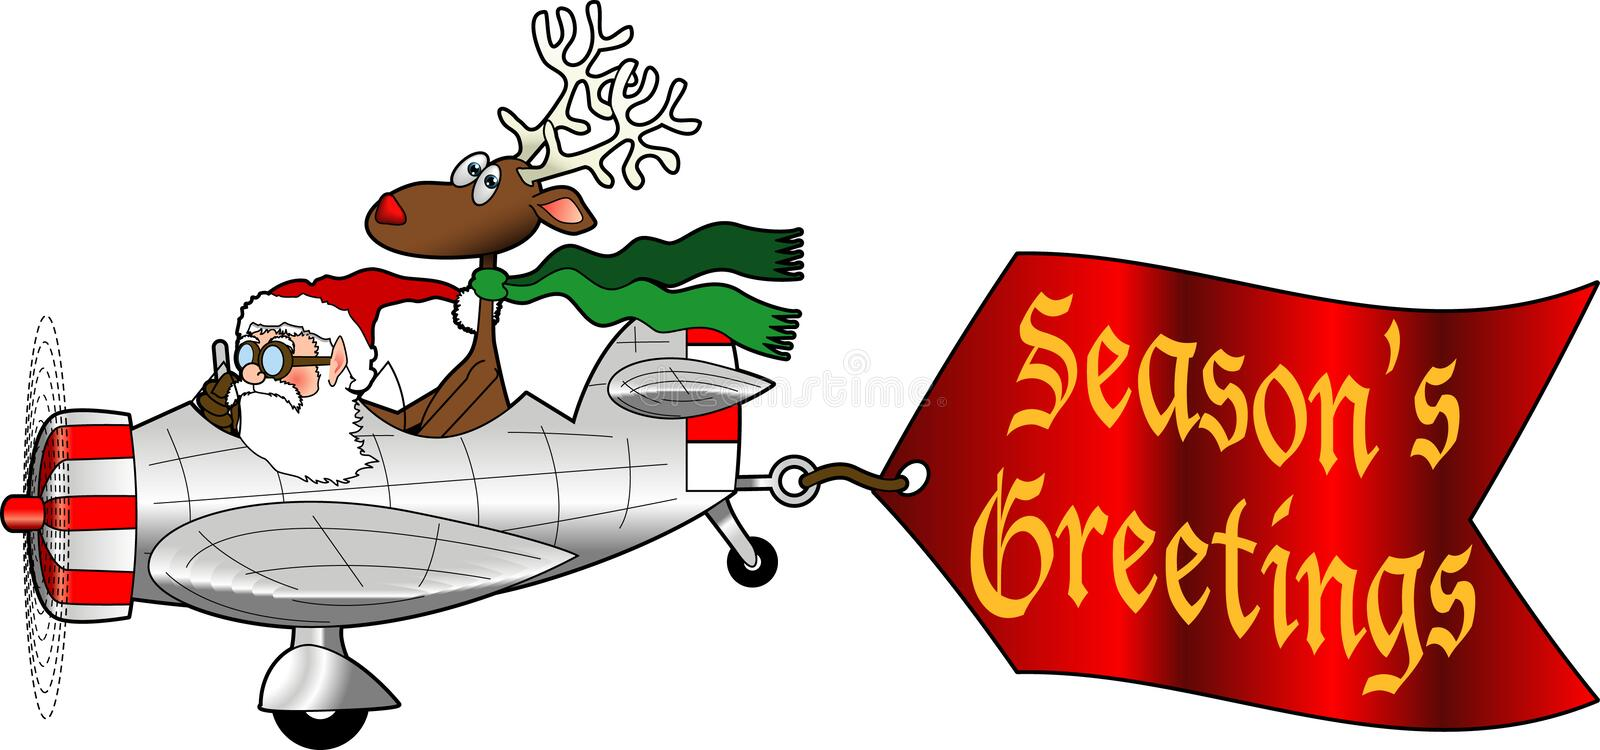 Airplane_5. Cartoon graphic depicting Santa and a reindeer flying an airplane with an attached message sign vector illustration